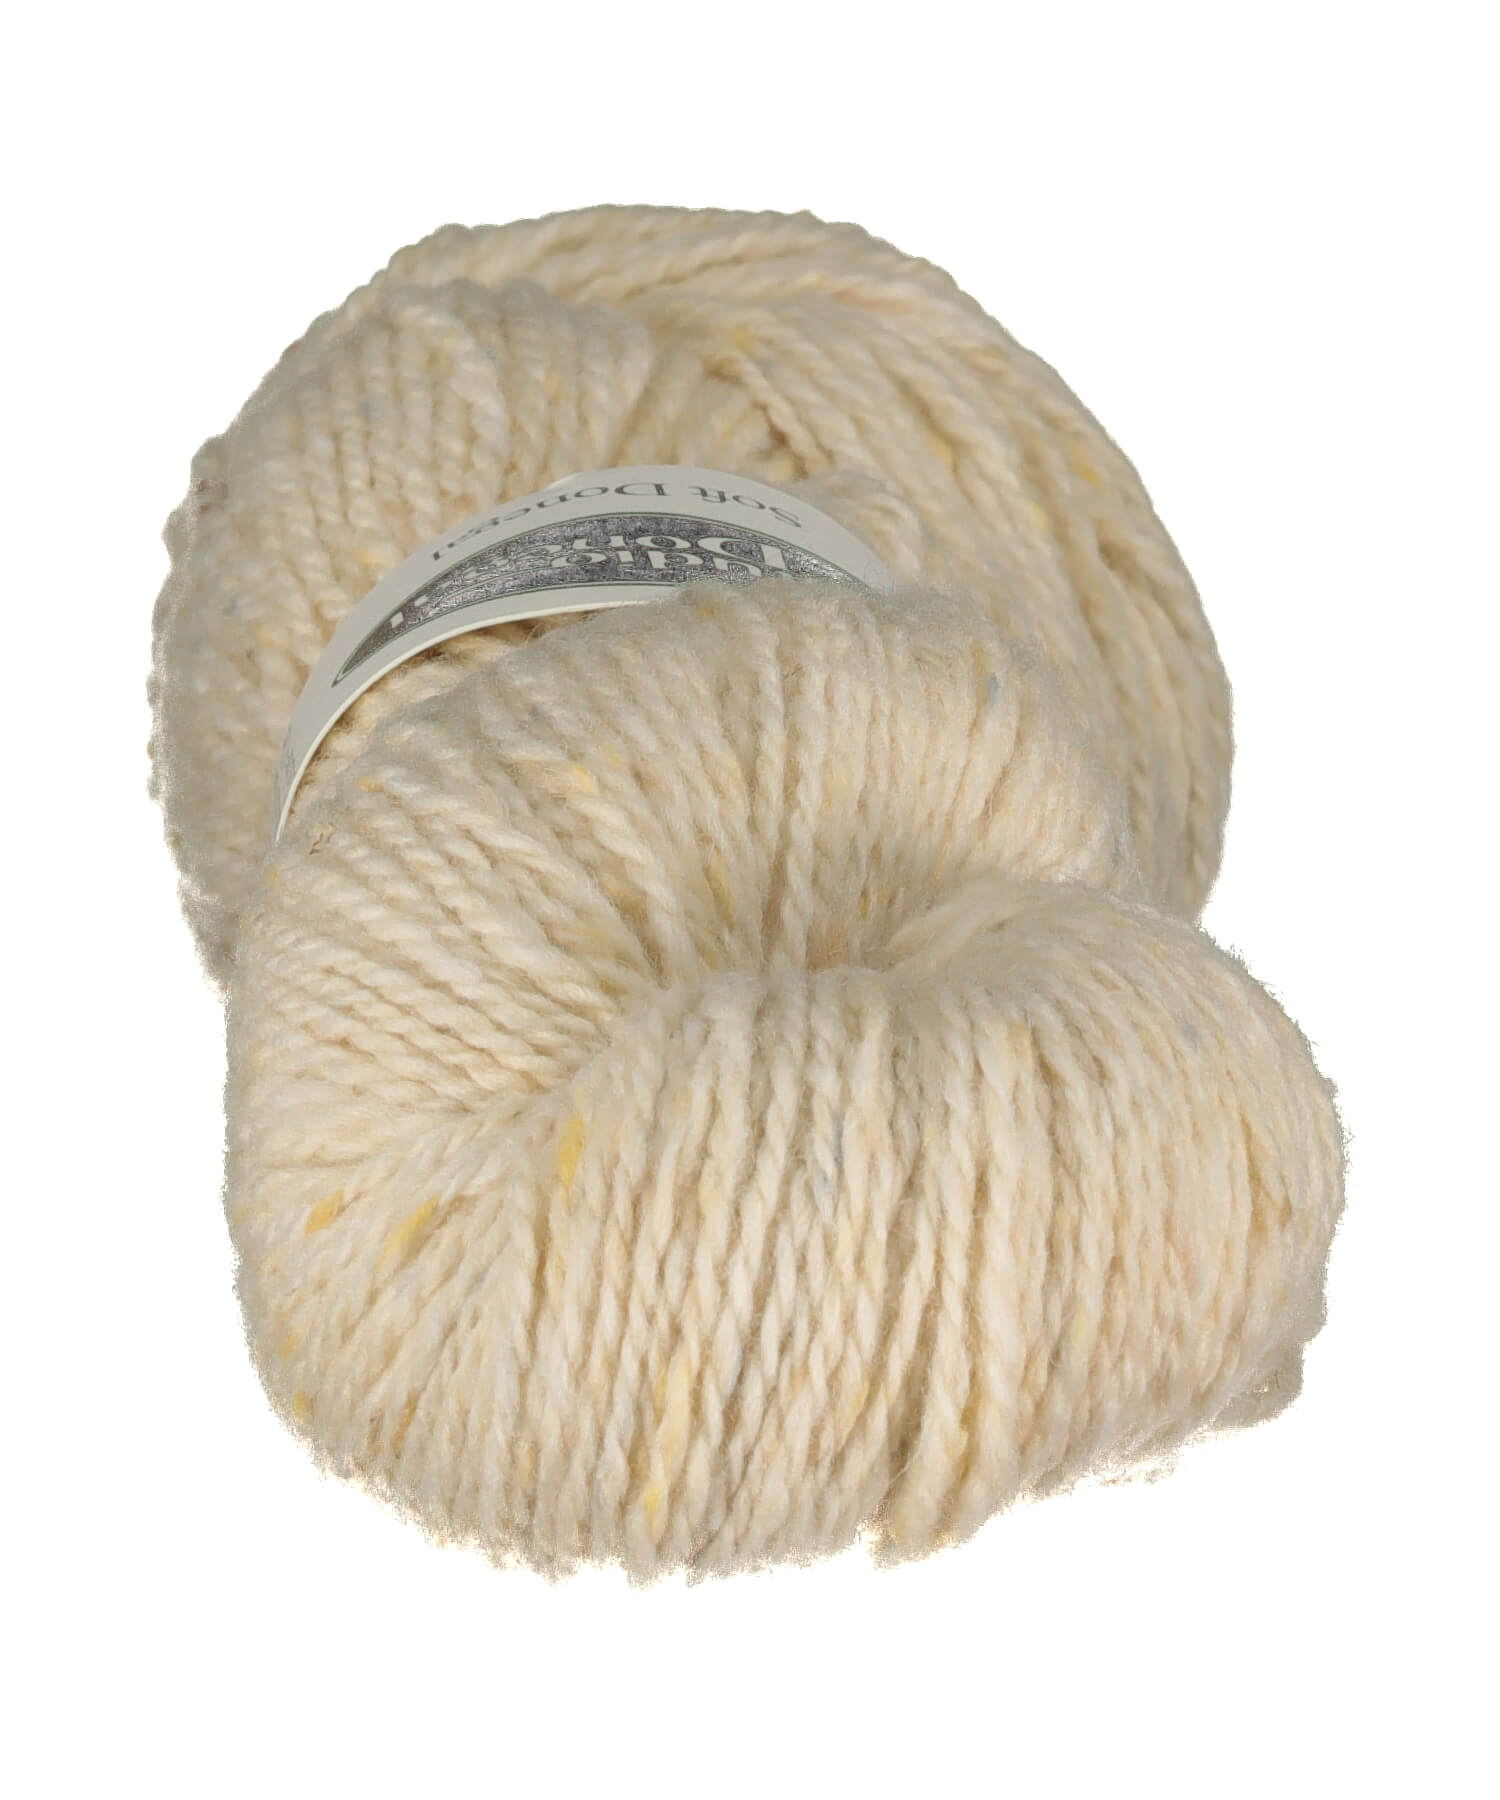 Soft Donegal Yarn - Bainin - [Studio Donegal] - Knitting - Irish Gifts